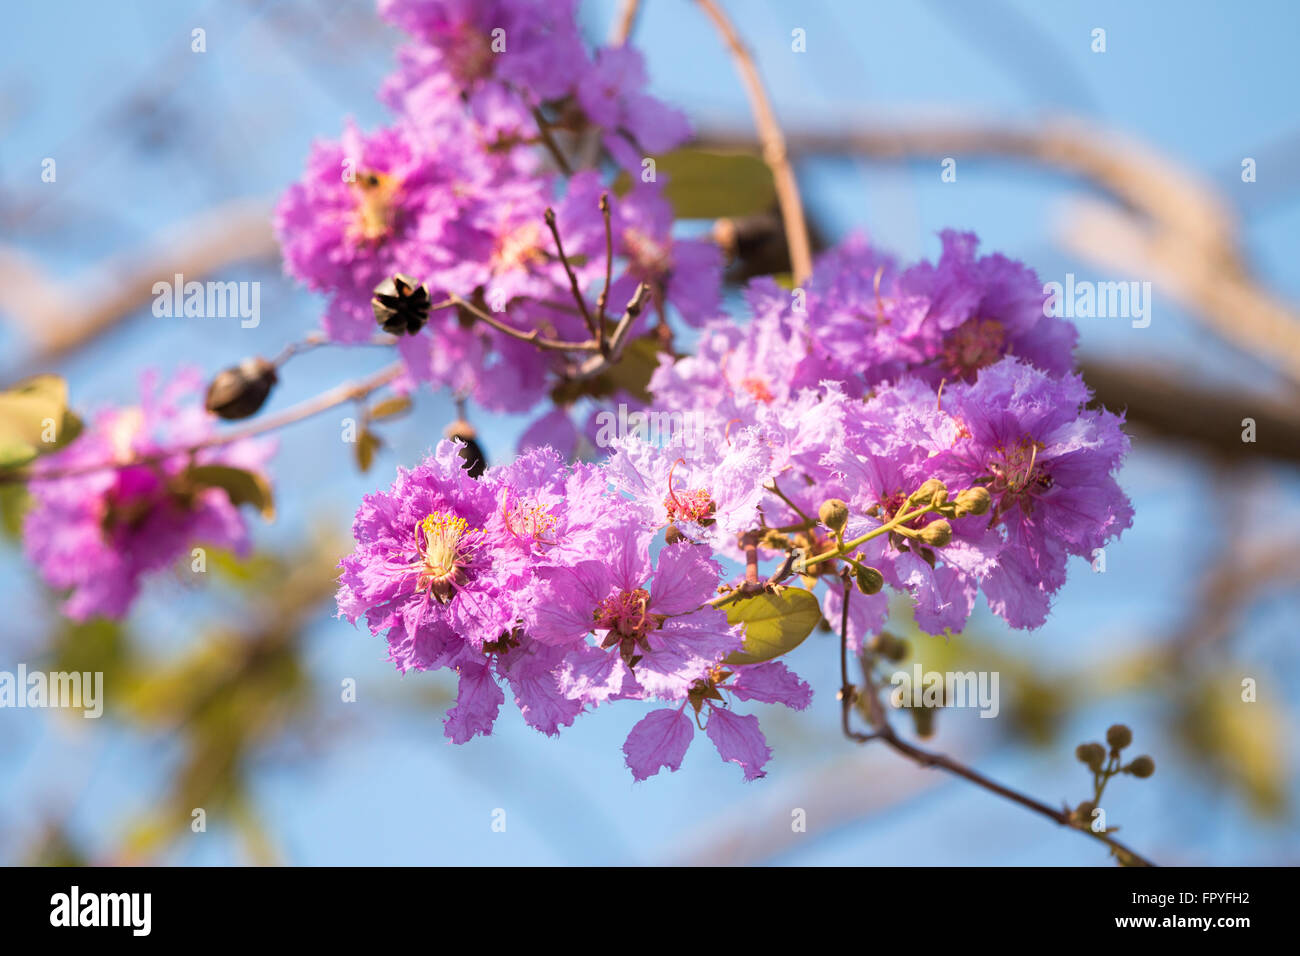 Bachelor Button Plant Flower Medicinal Uses Flowers In India Stock Photos & Flowers In India Stock